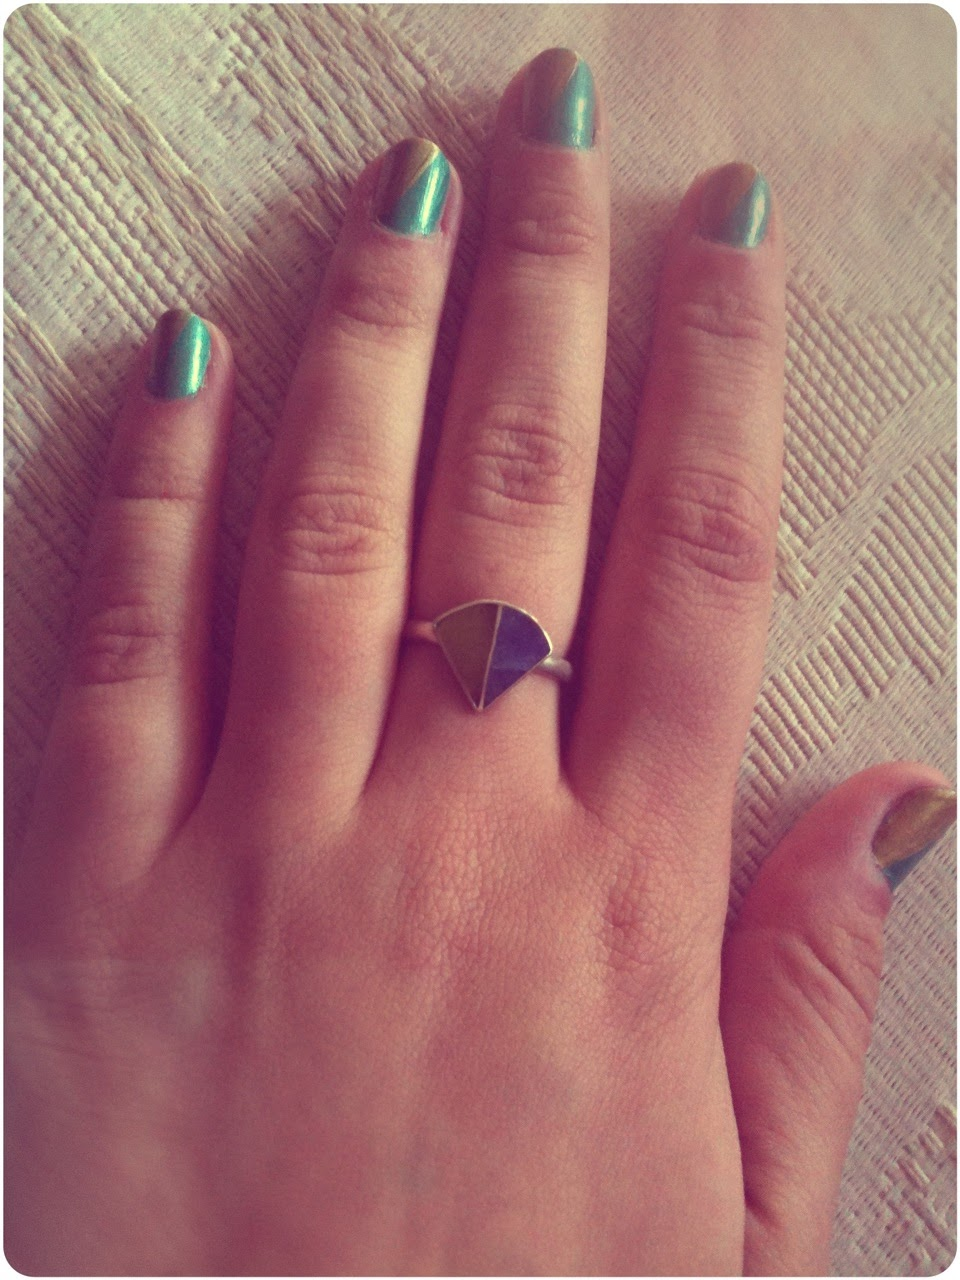 Two-tone Nails / Gold and Teal | The Price of Tea